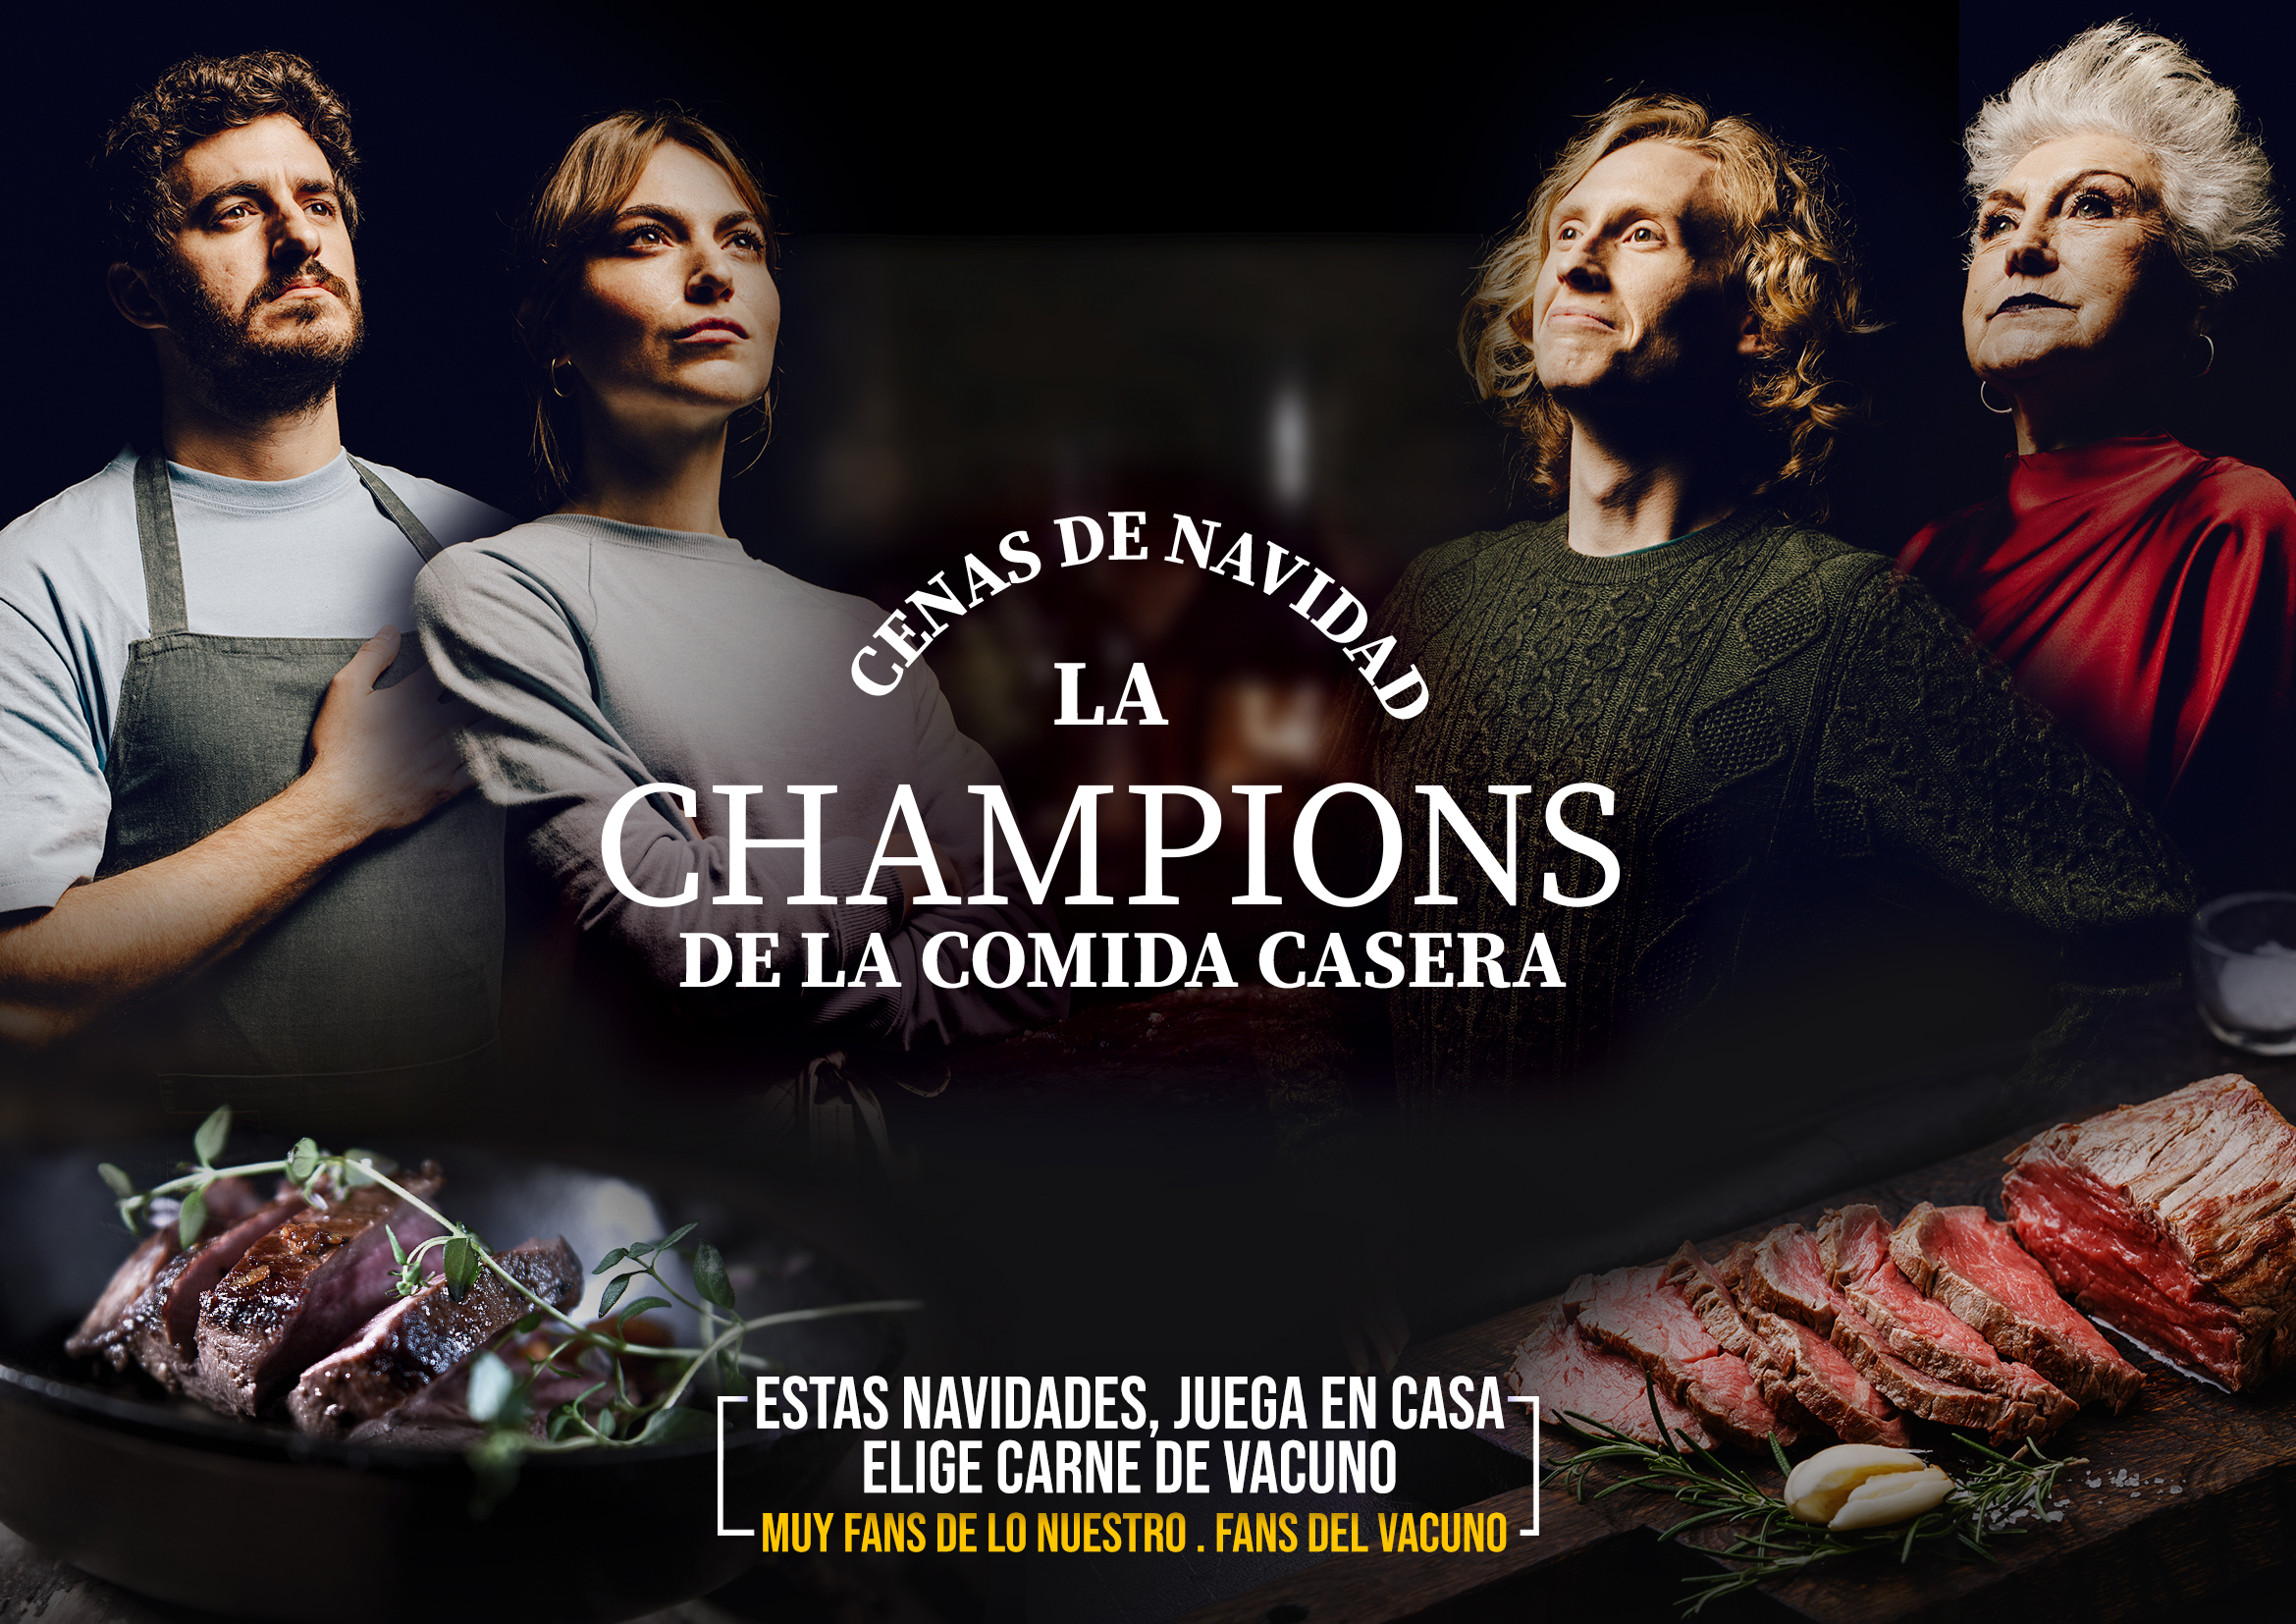 Provacuno Launches 'La Champions De La Comida Casera', The New Campaign To Enjoy And Hit Christmas With The Best Meat In The World